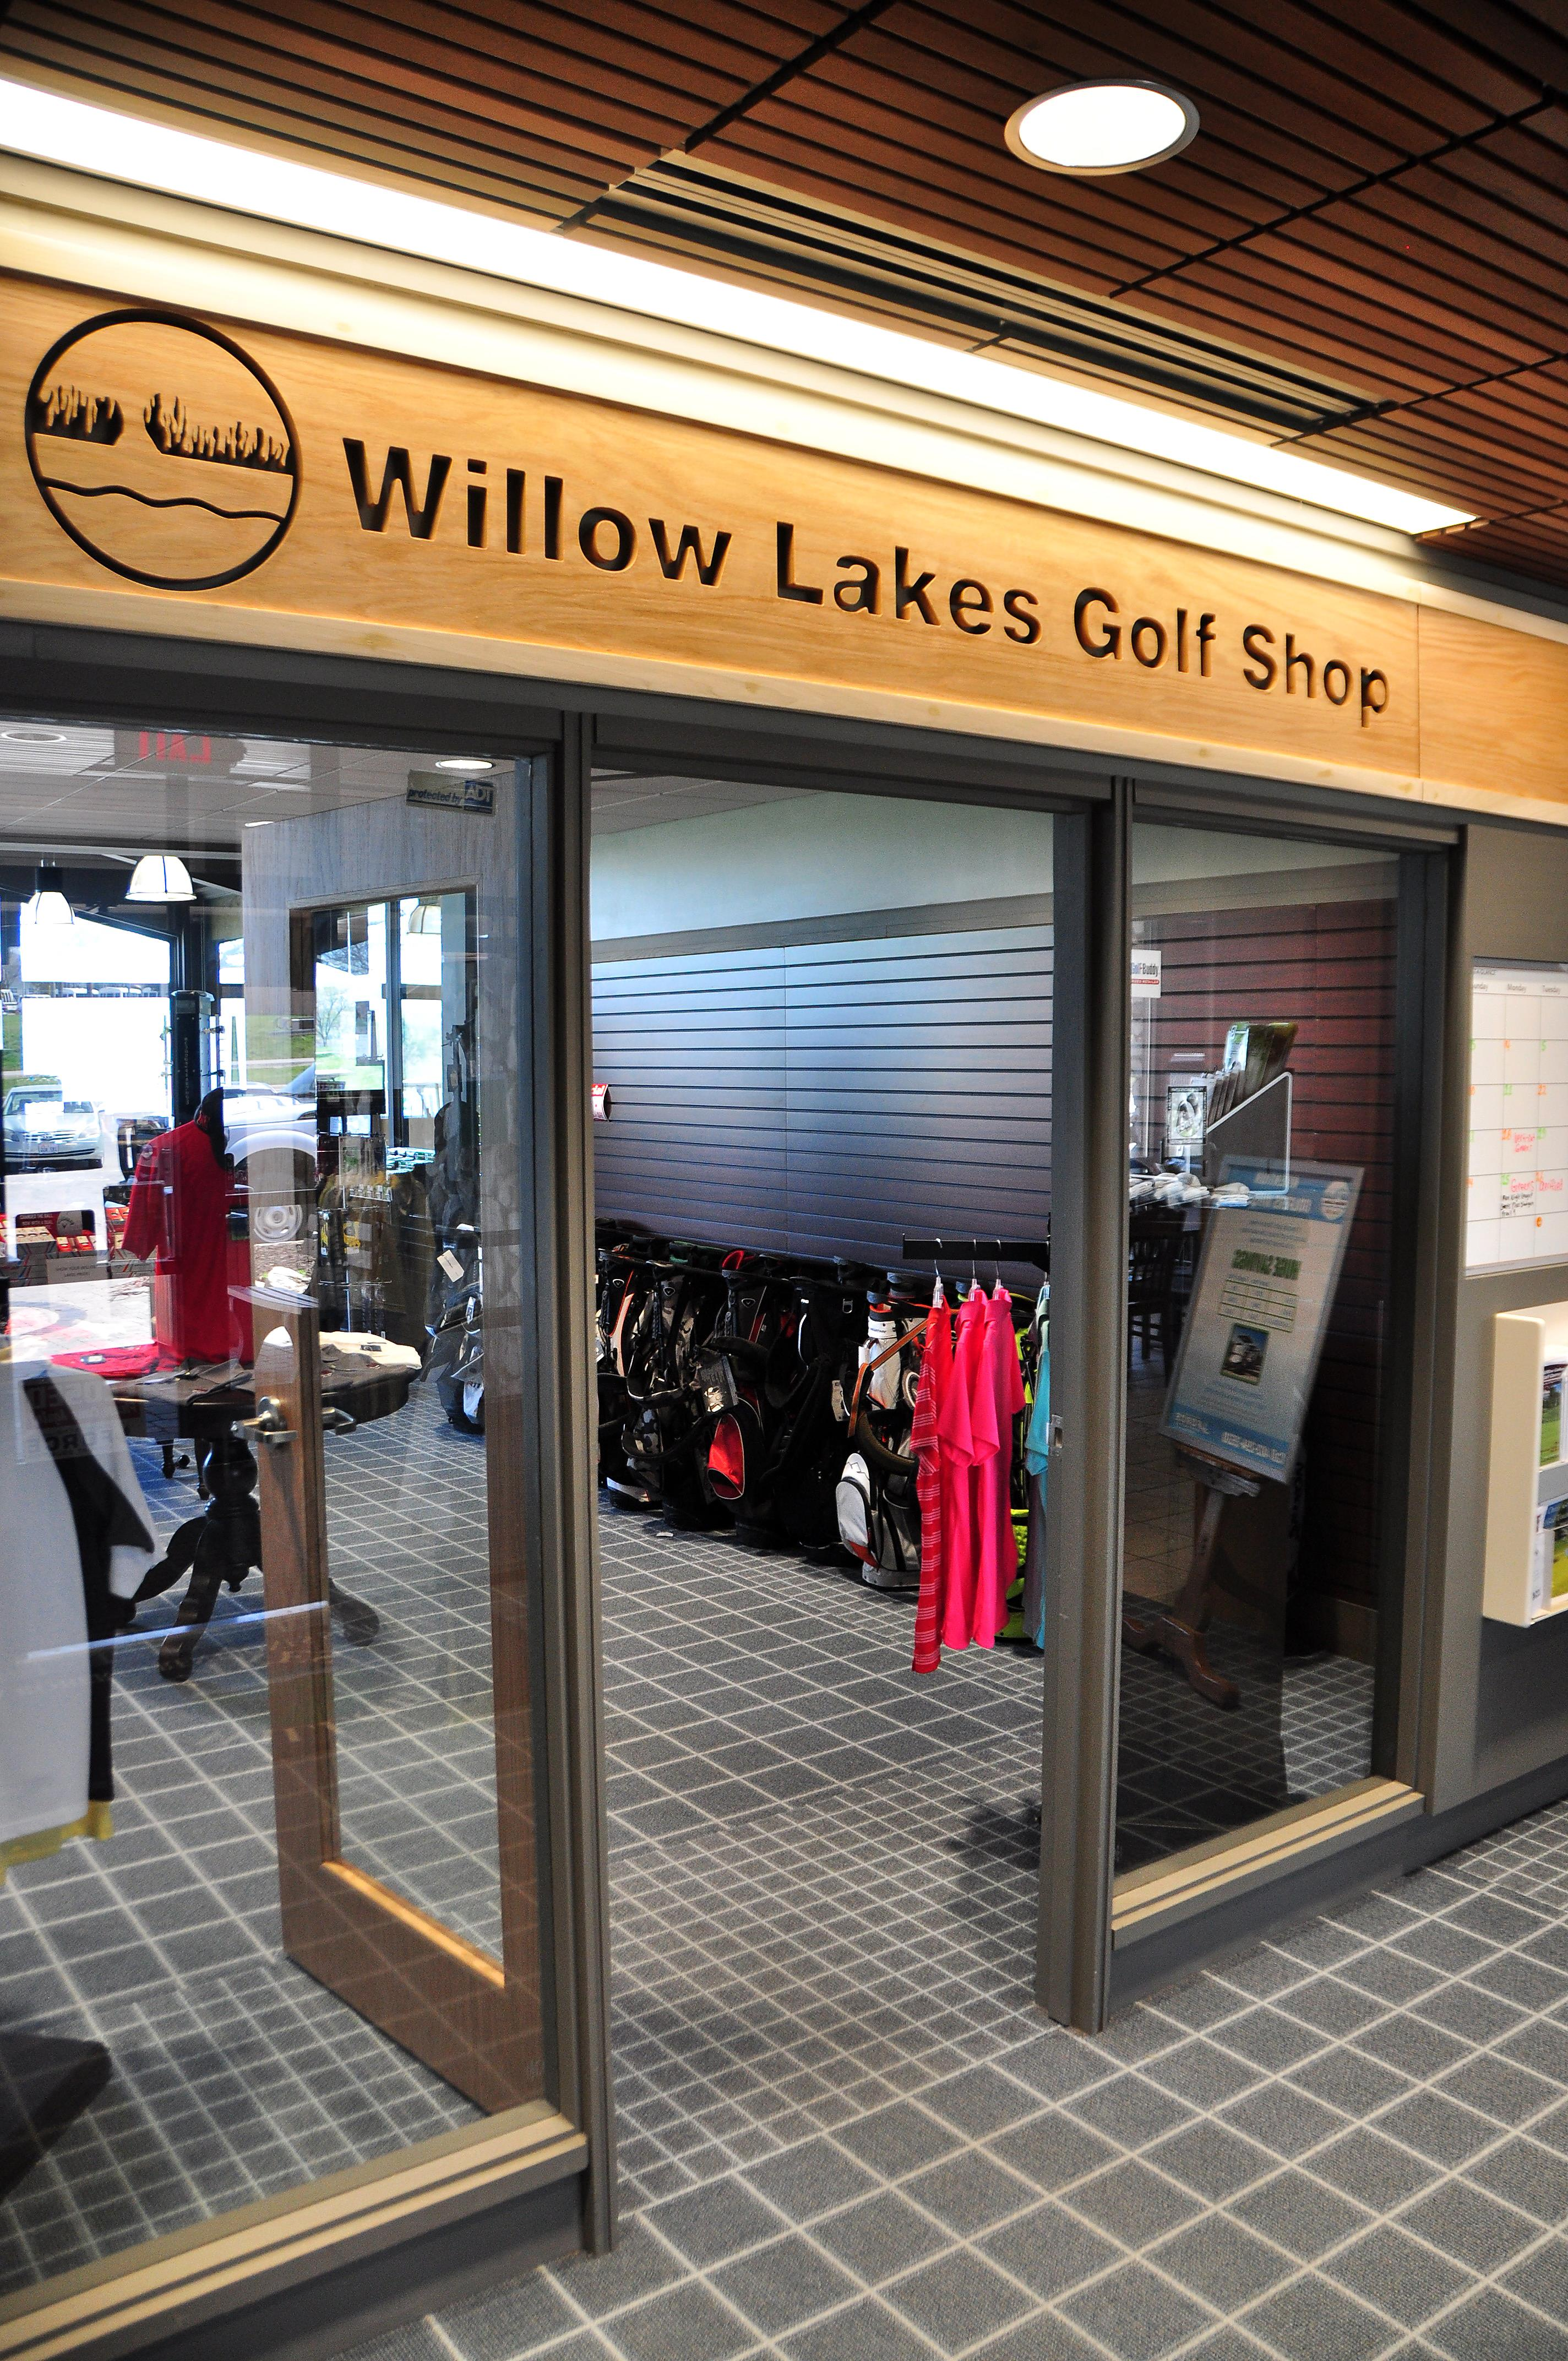 willow lakes pro shop revitalized for 2016 golf season. Black Bedroom Furniture Sets. Home Design Ideas